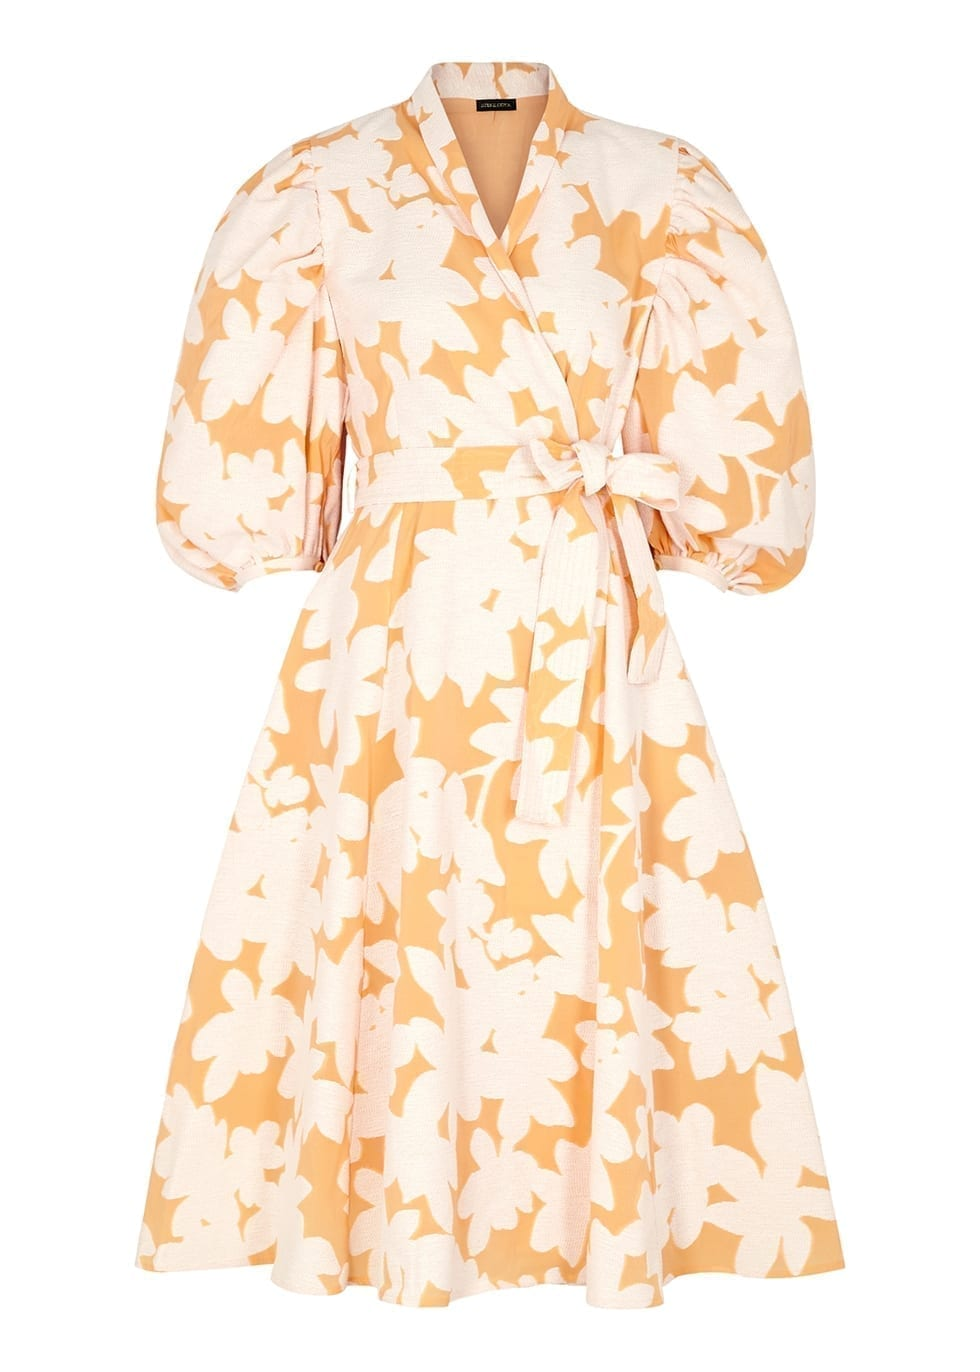 STINE GOYA Belinda Cotton-blend Jacquard Wrap Dress